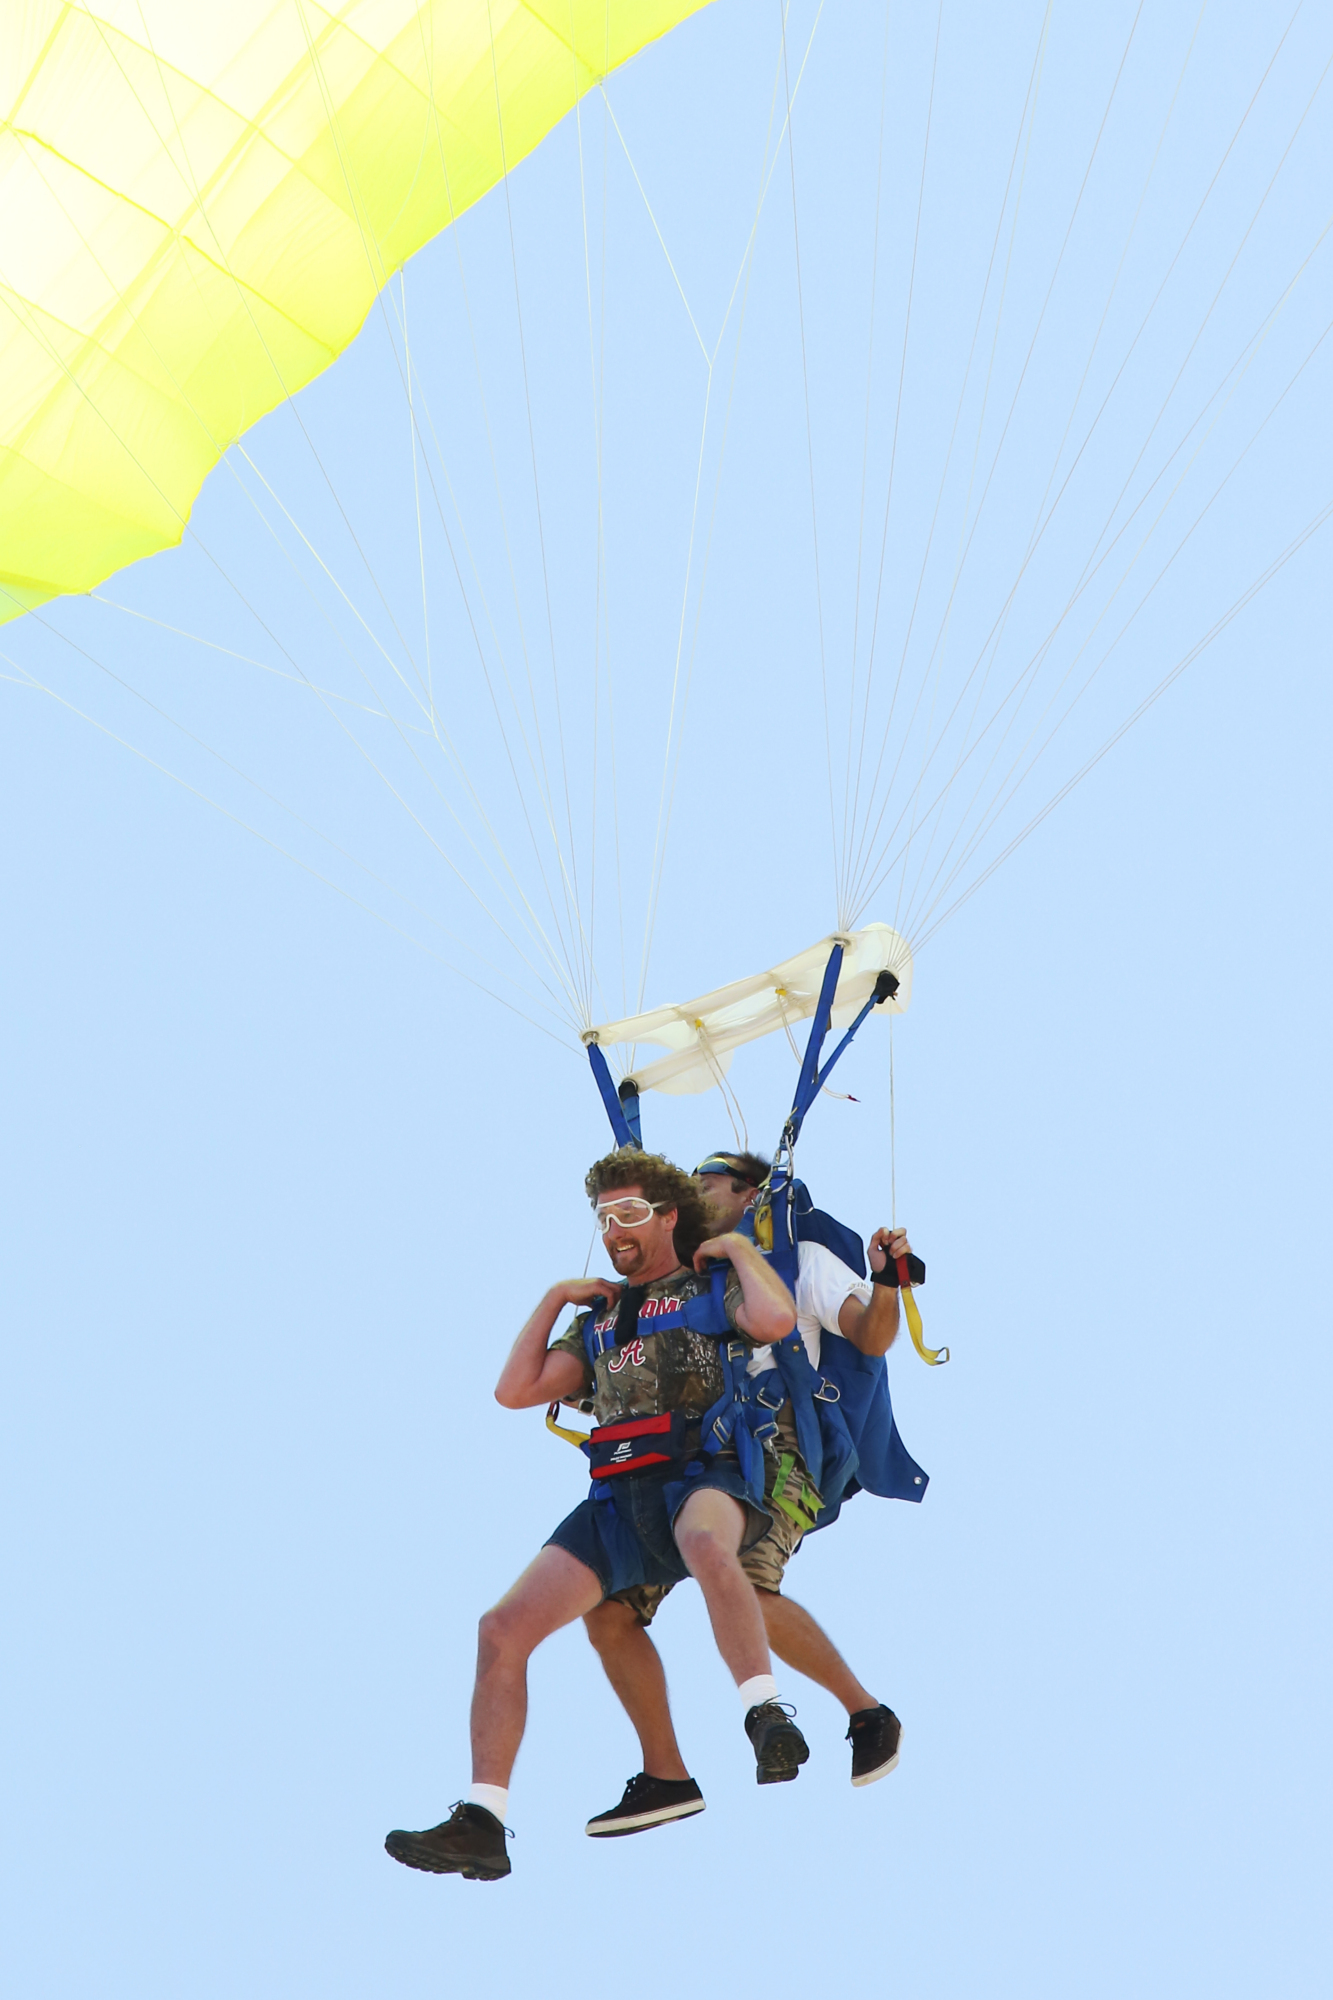 Chuck skydiving